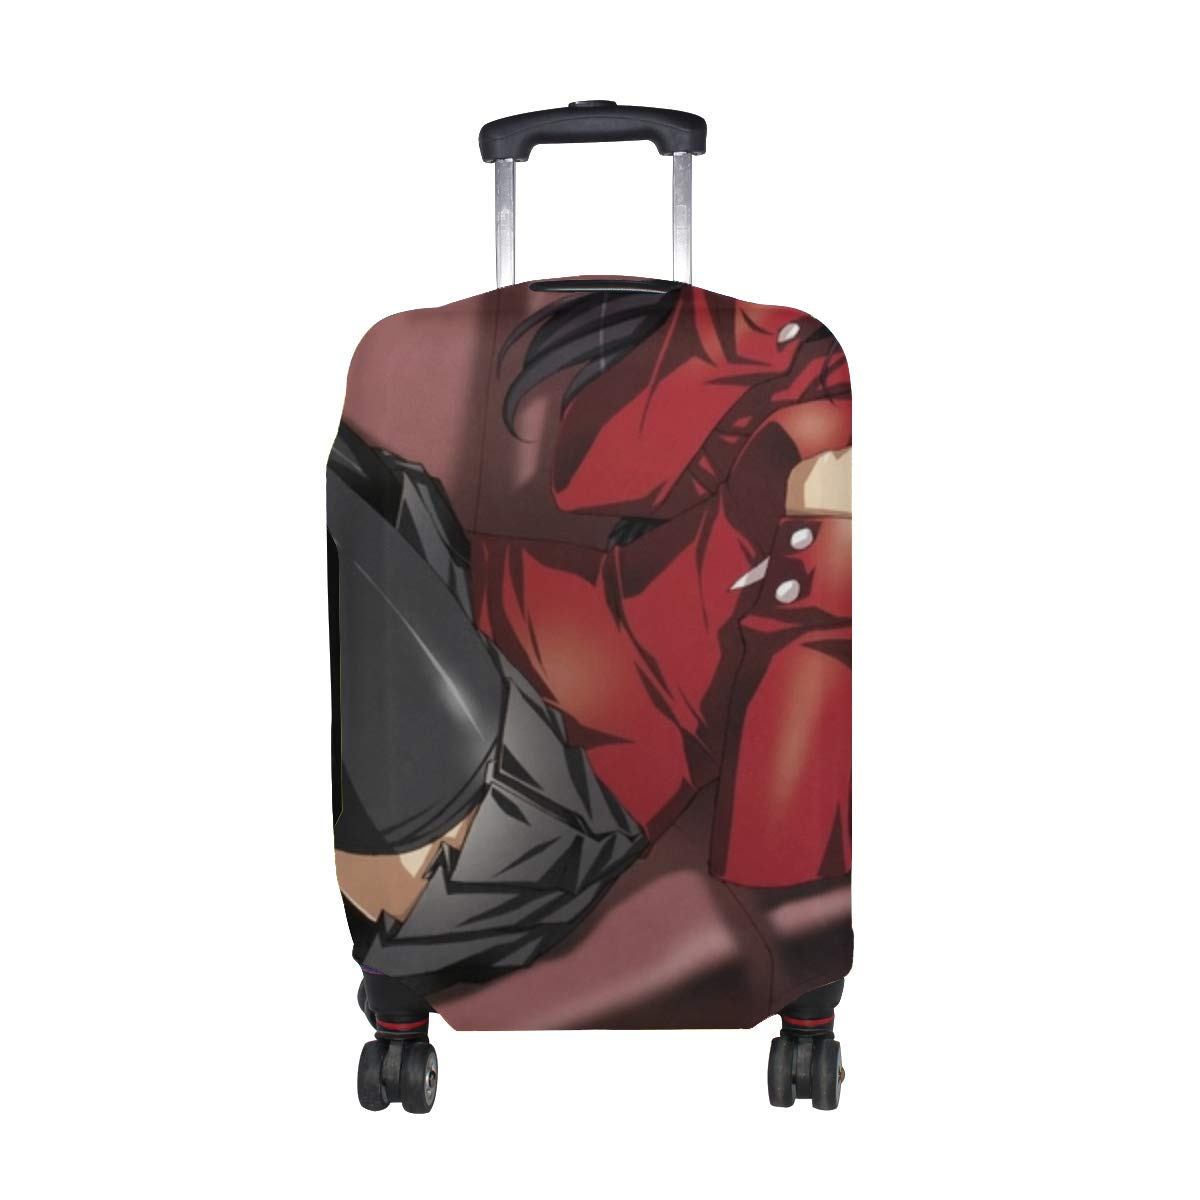 Maxm Anime Girl Dear Sofa Stockings Smile Pattern Print Travel Luggage Protector Baggage Suitcase Cover Fits 18-21 Inch Luggage